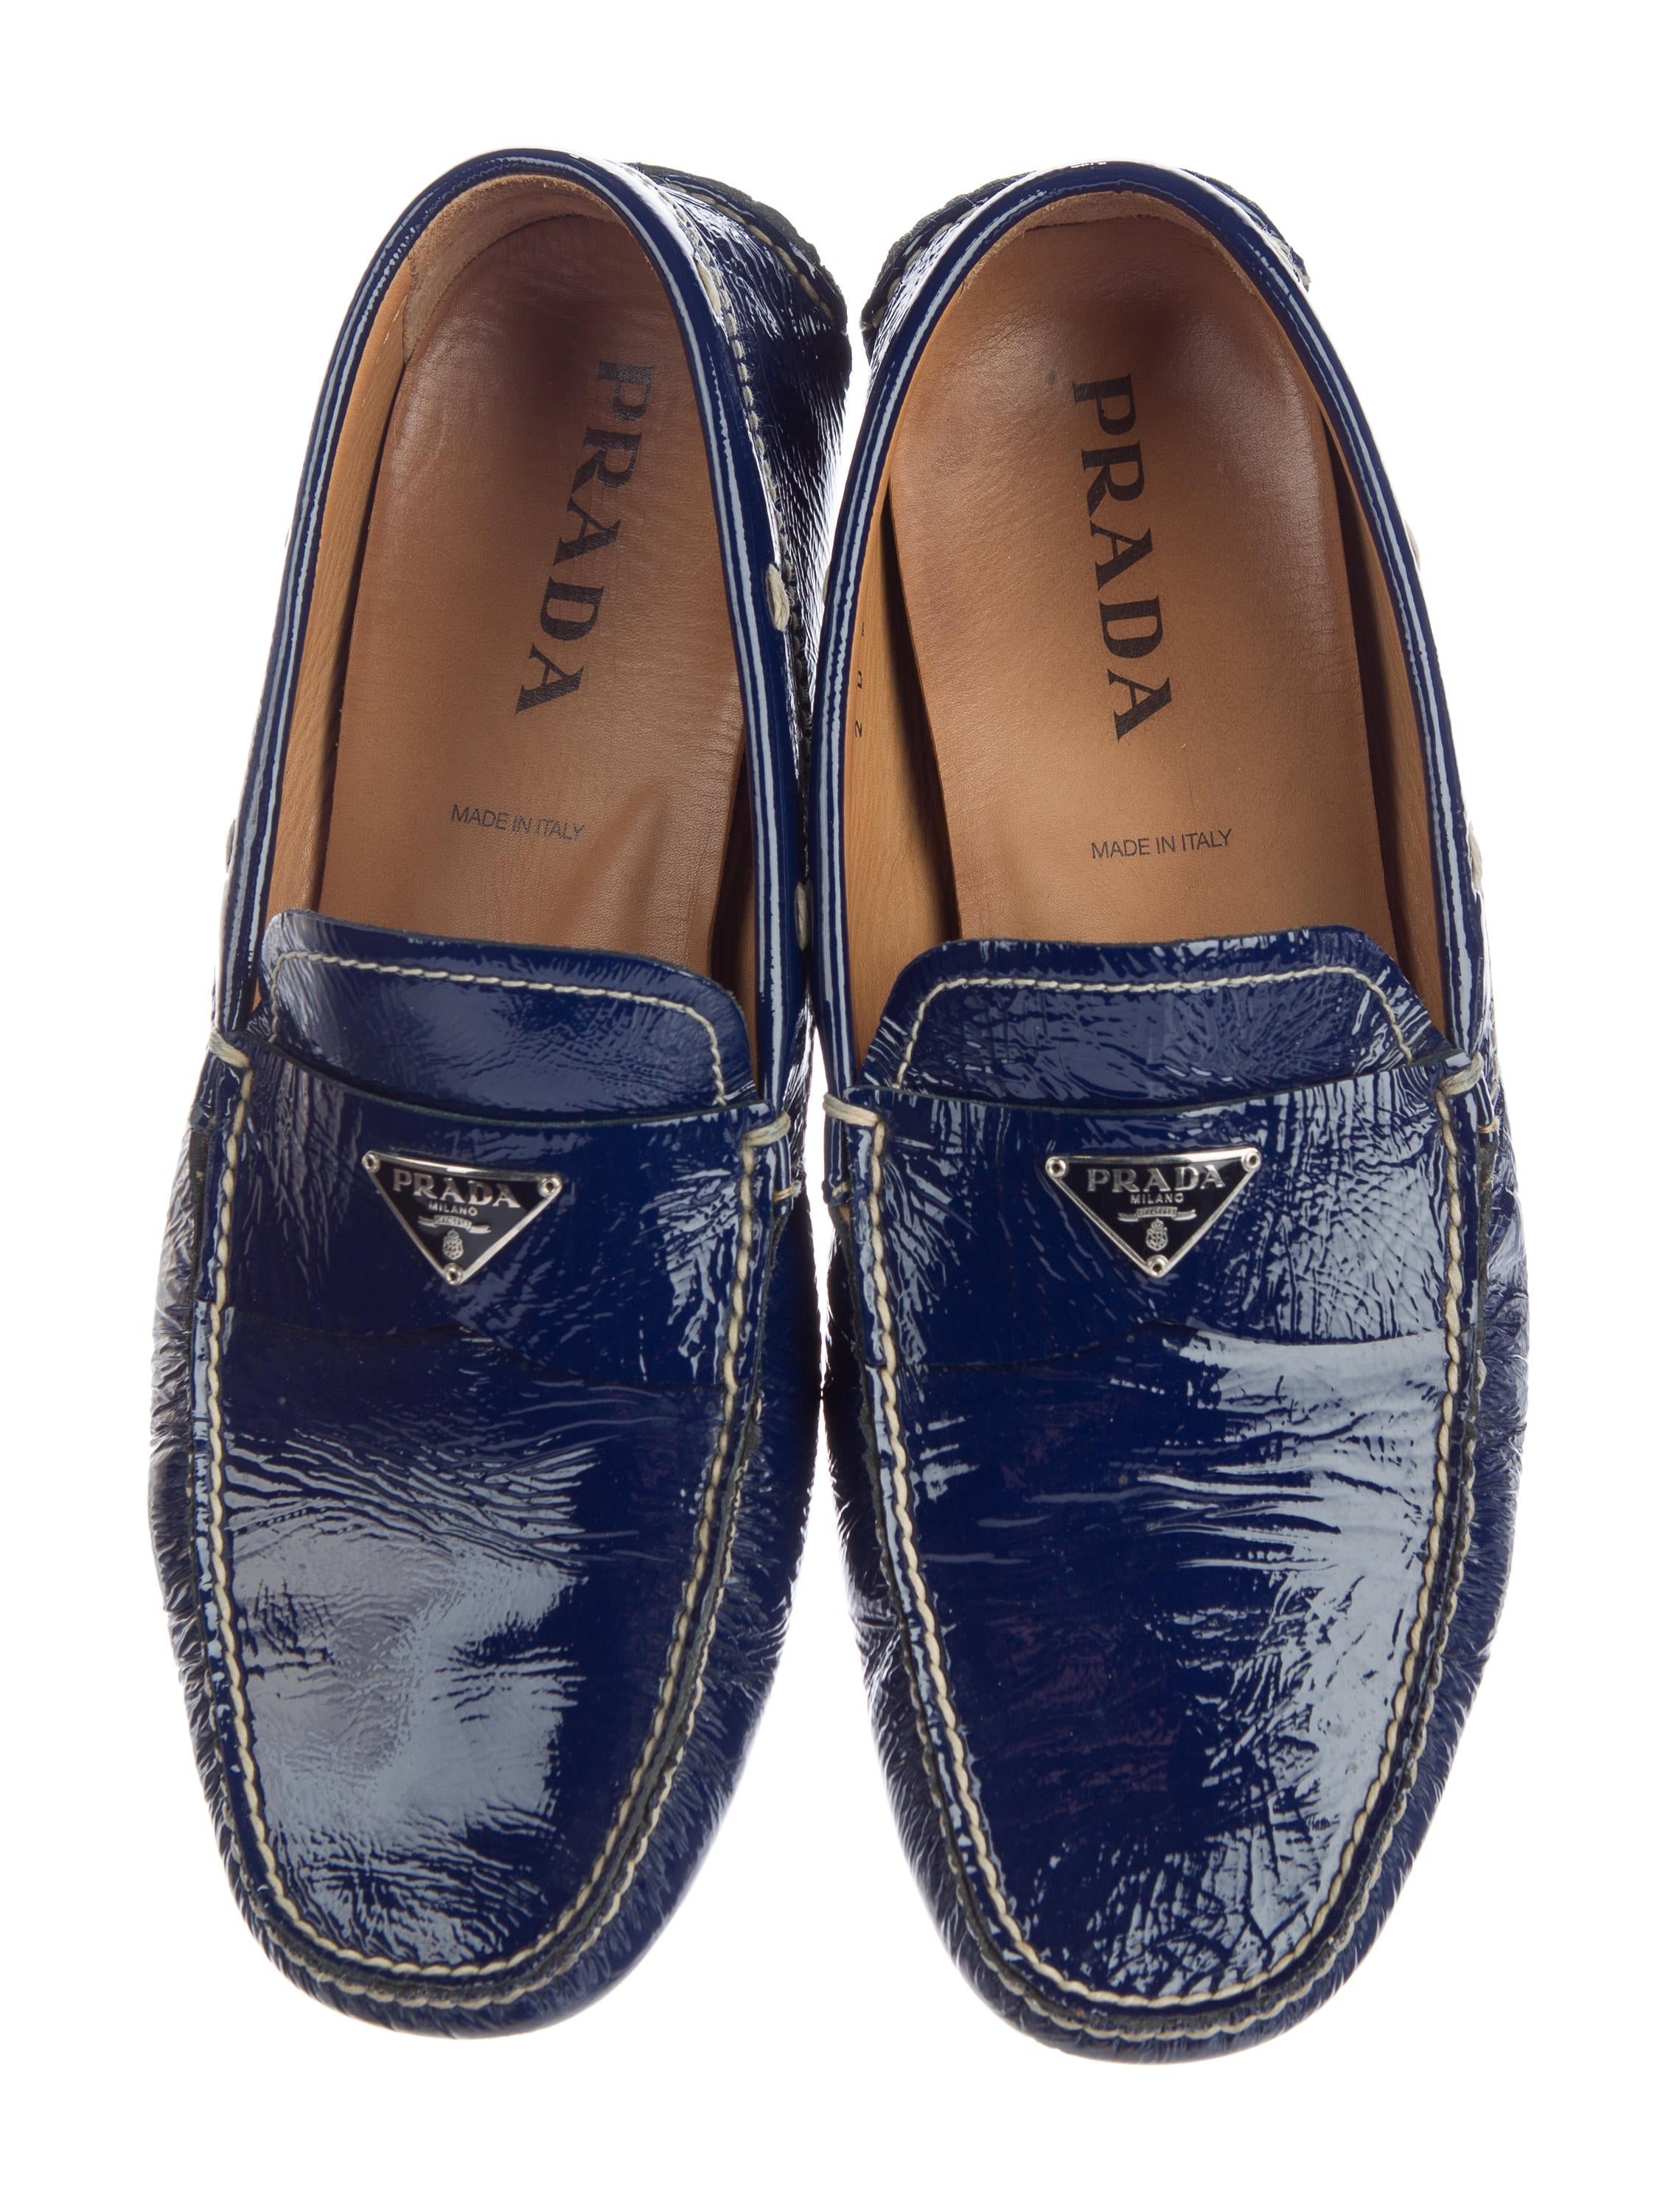 prada patent leather loafers shoes pra119157 the